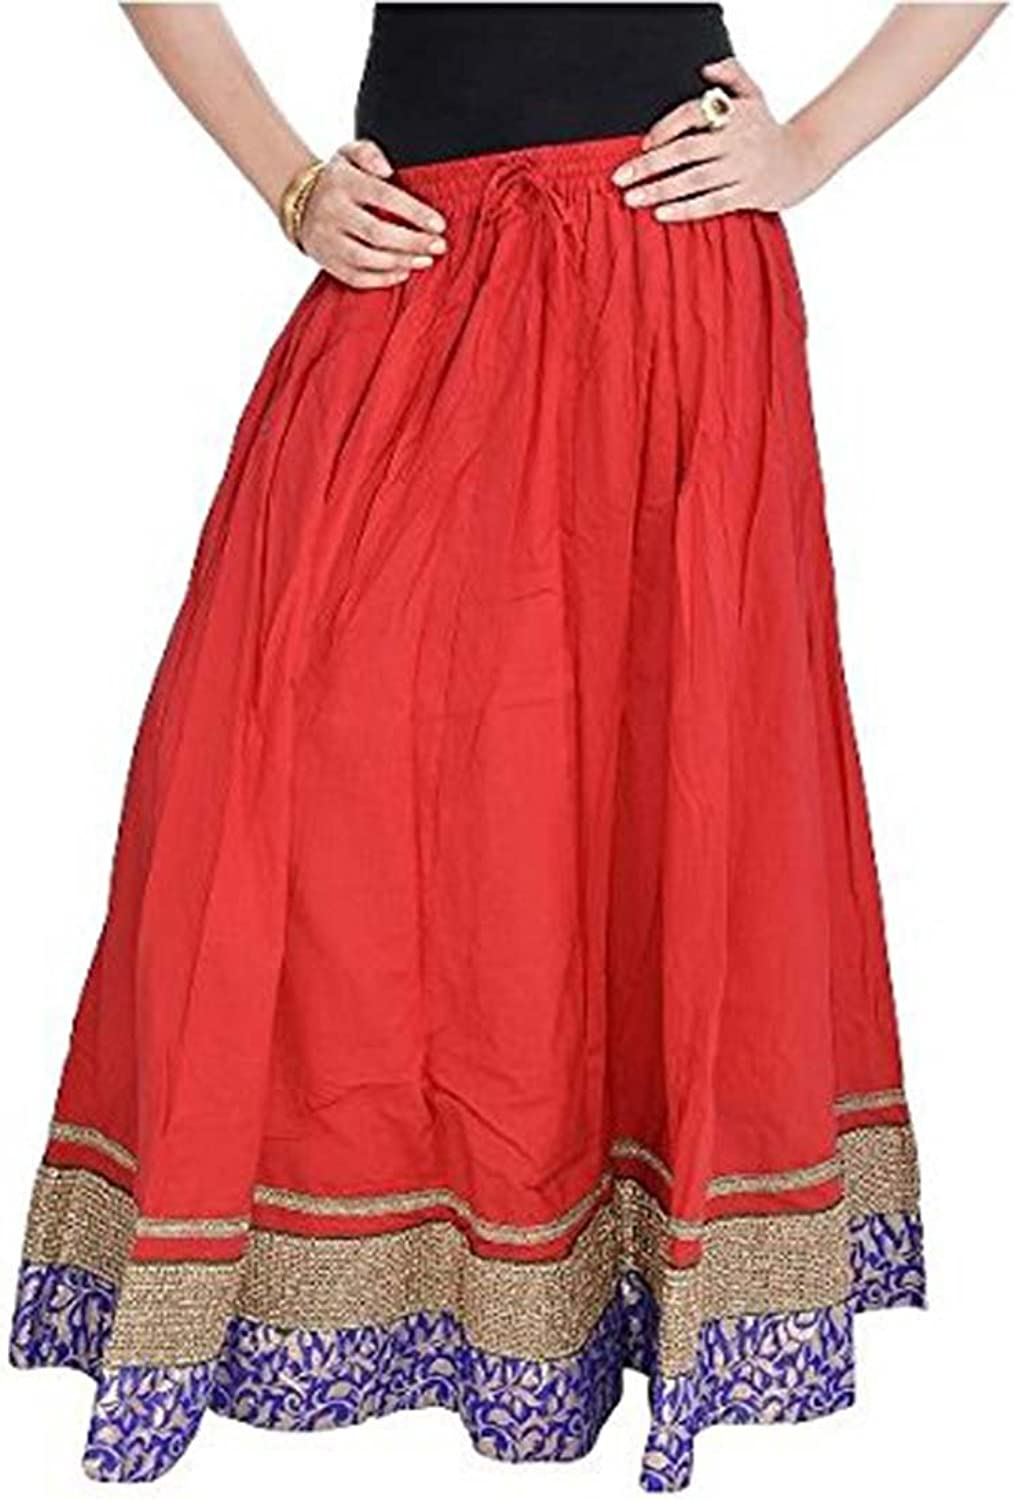 Indian Handicrfats Export Women Rajasthani Red Cotton Skirt(Red)(SMSKT509)